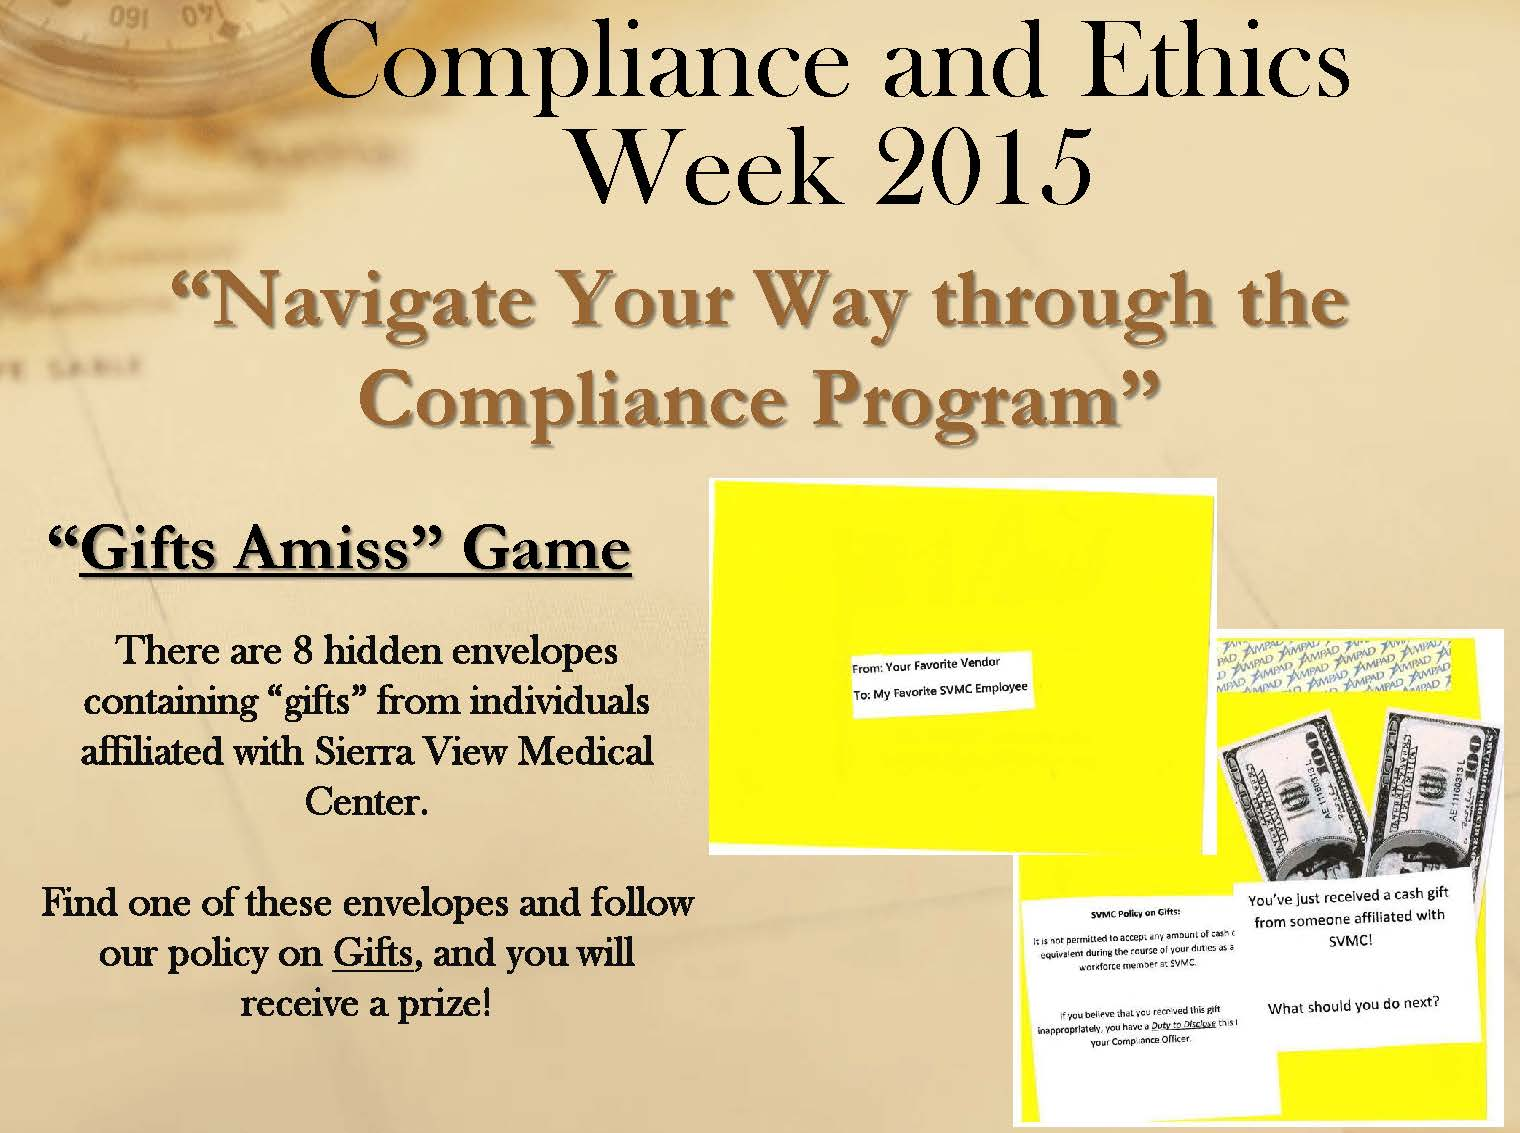 business ethics and compliance Companies the world over often struggle to balance ethics and compliance those that are regulated often see compliance as pre-eminent yet many have come to recognise that to build a positive corporate culture it is important to establish the right mindset that mindset, which should be based on an.